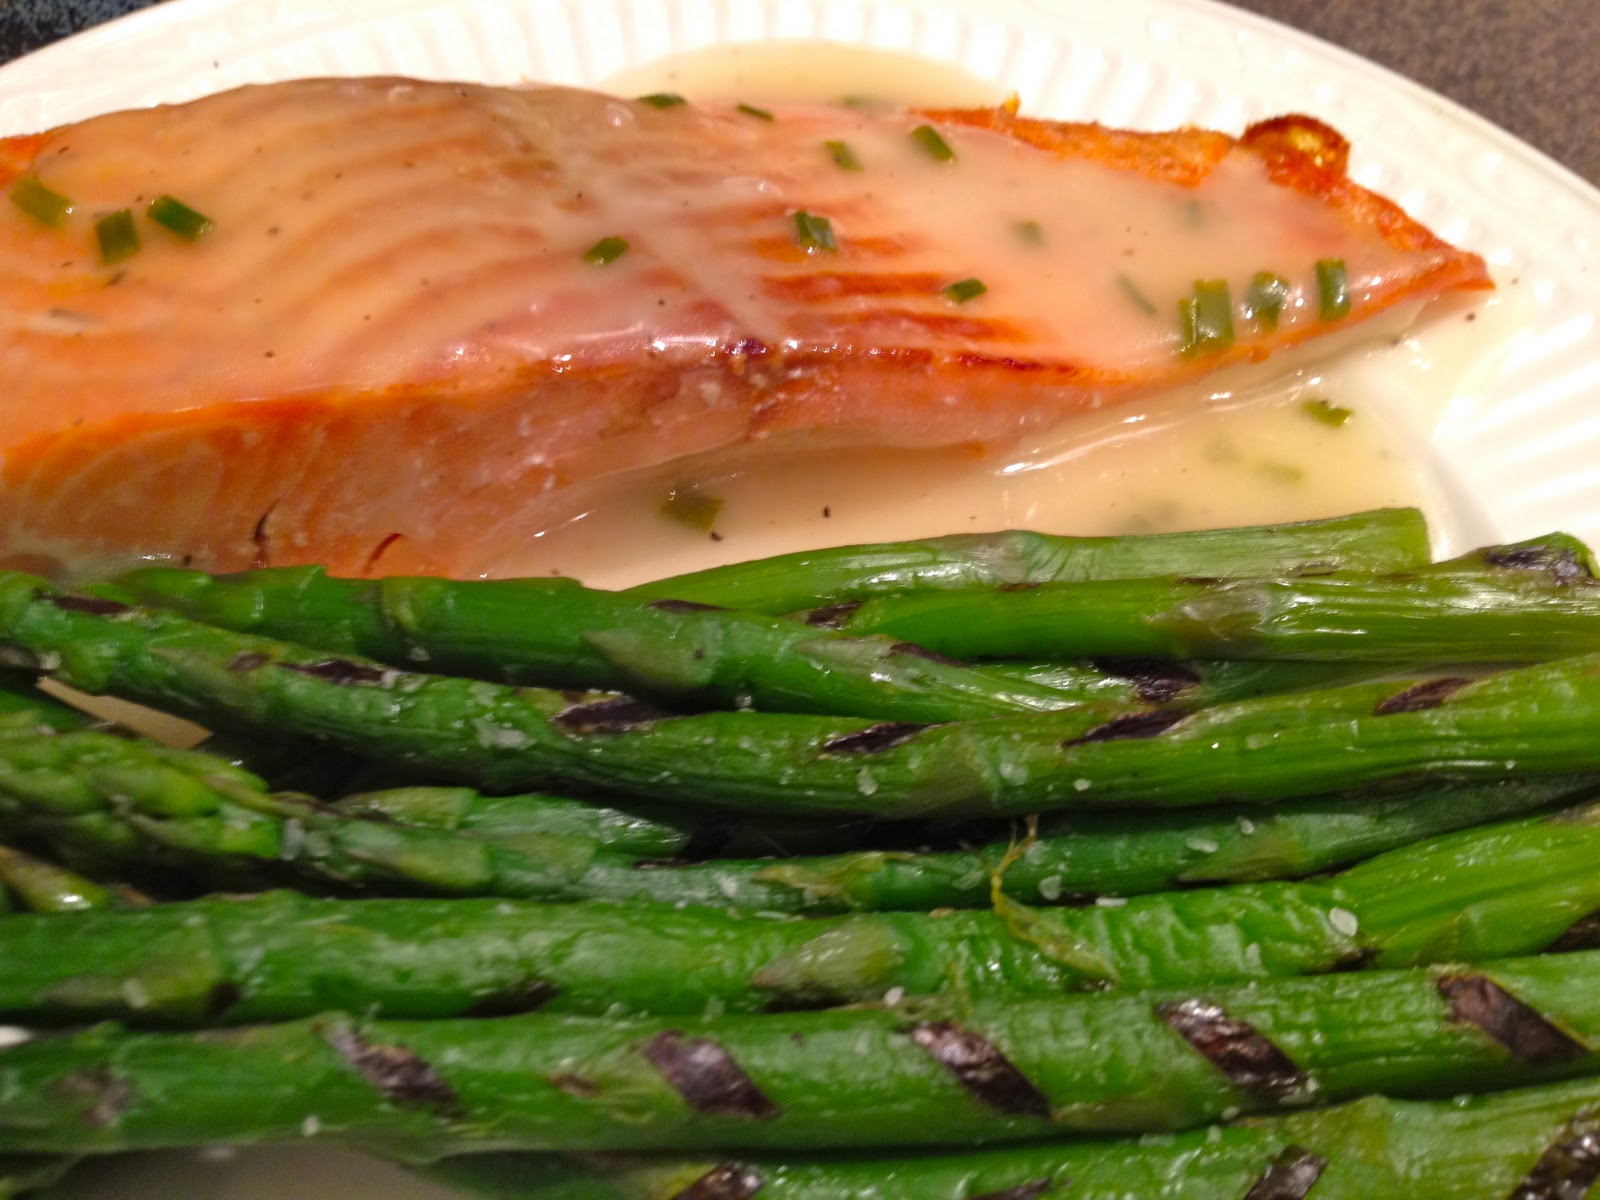 Call Me Mrs. Rapp: Roasted Salmon with White Wine Sauce